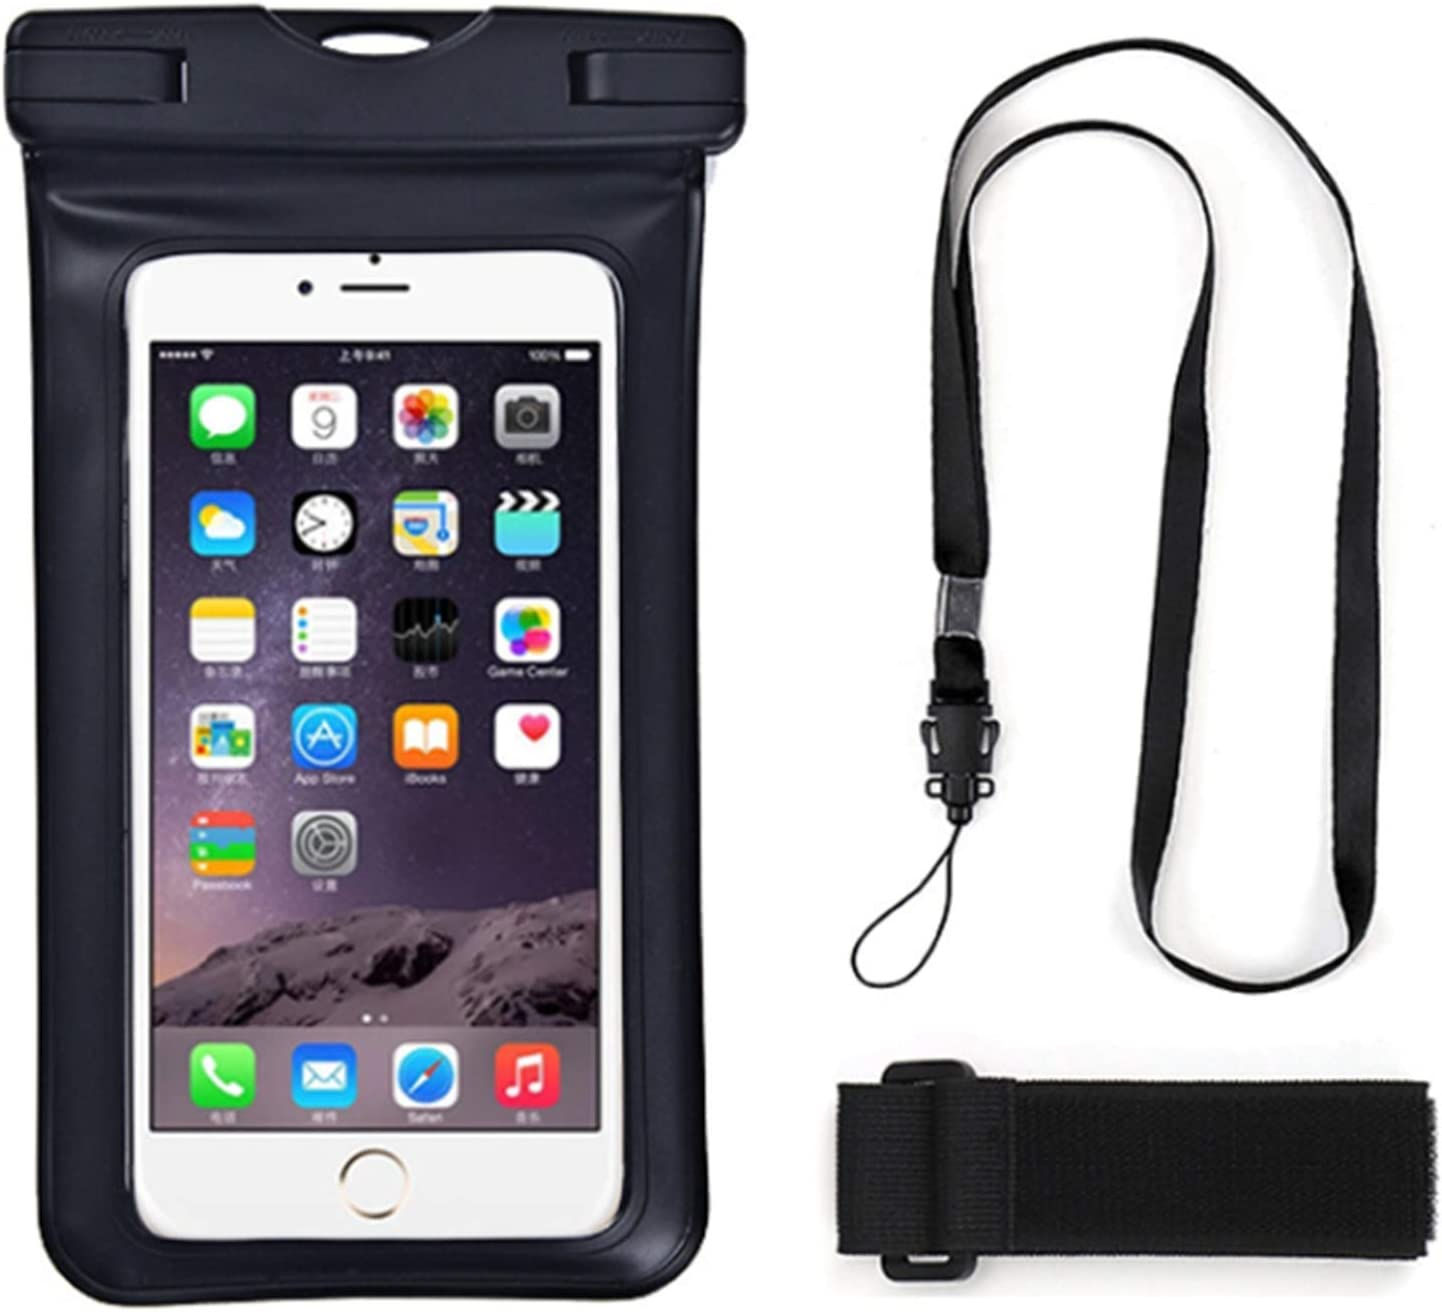 Universal Waterproof Underwater Cell Phone Dry Bag Pouch Case with Lanyard Armband for iPhone 12, 12 Pro, 12 Pro Max, for Galaxy F22, M32, A22, F52 5G, M42 5G, M12, Quantum 2, F12, F02s, A72, Black